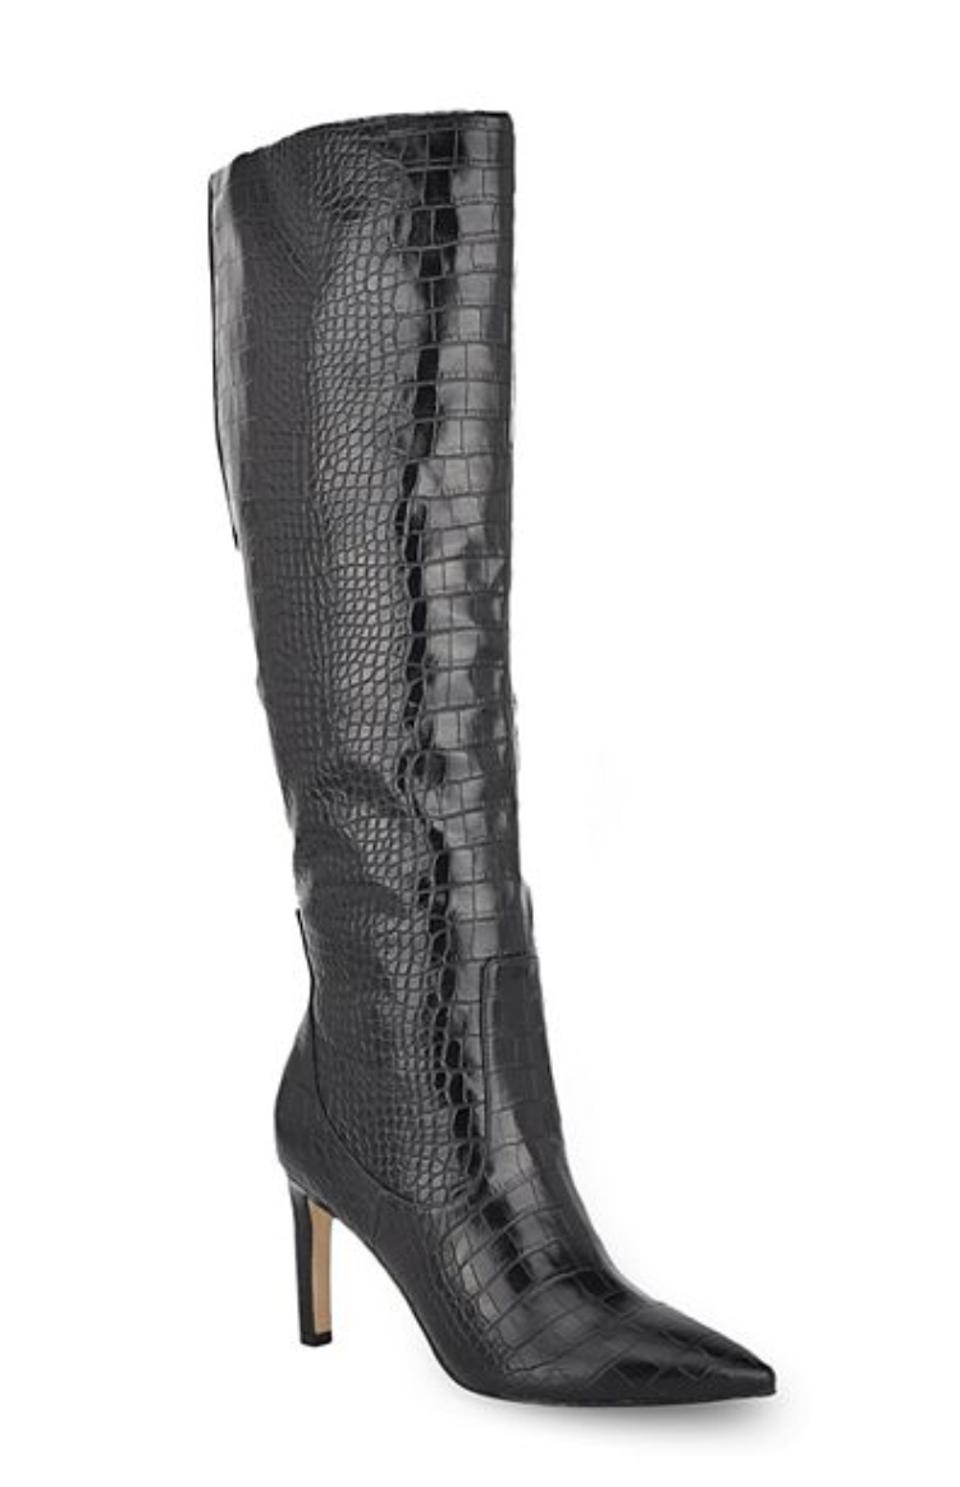 Nine West Maxim Women's Leather Knee High Boots